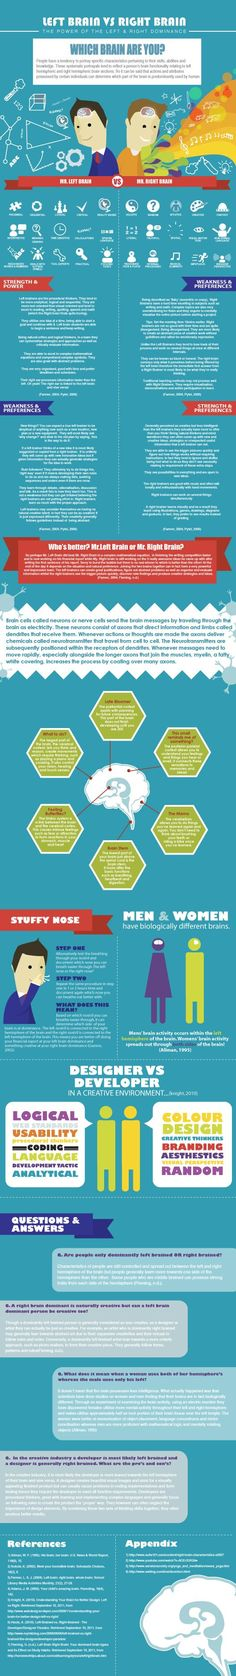 Left brain vs. right brain. Which are you? Interesting info on strengths and weaknesses